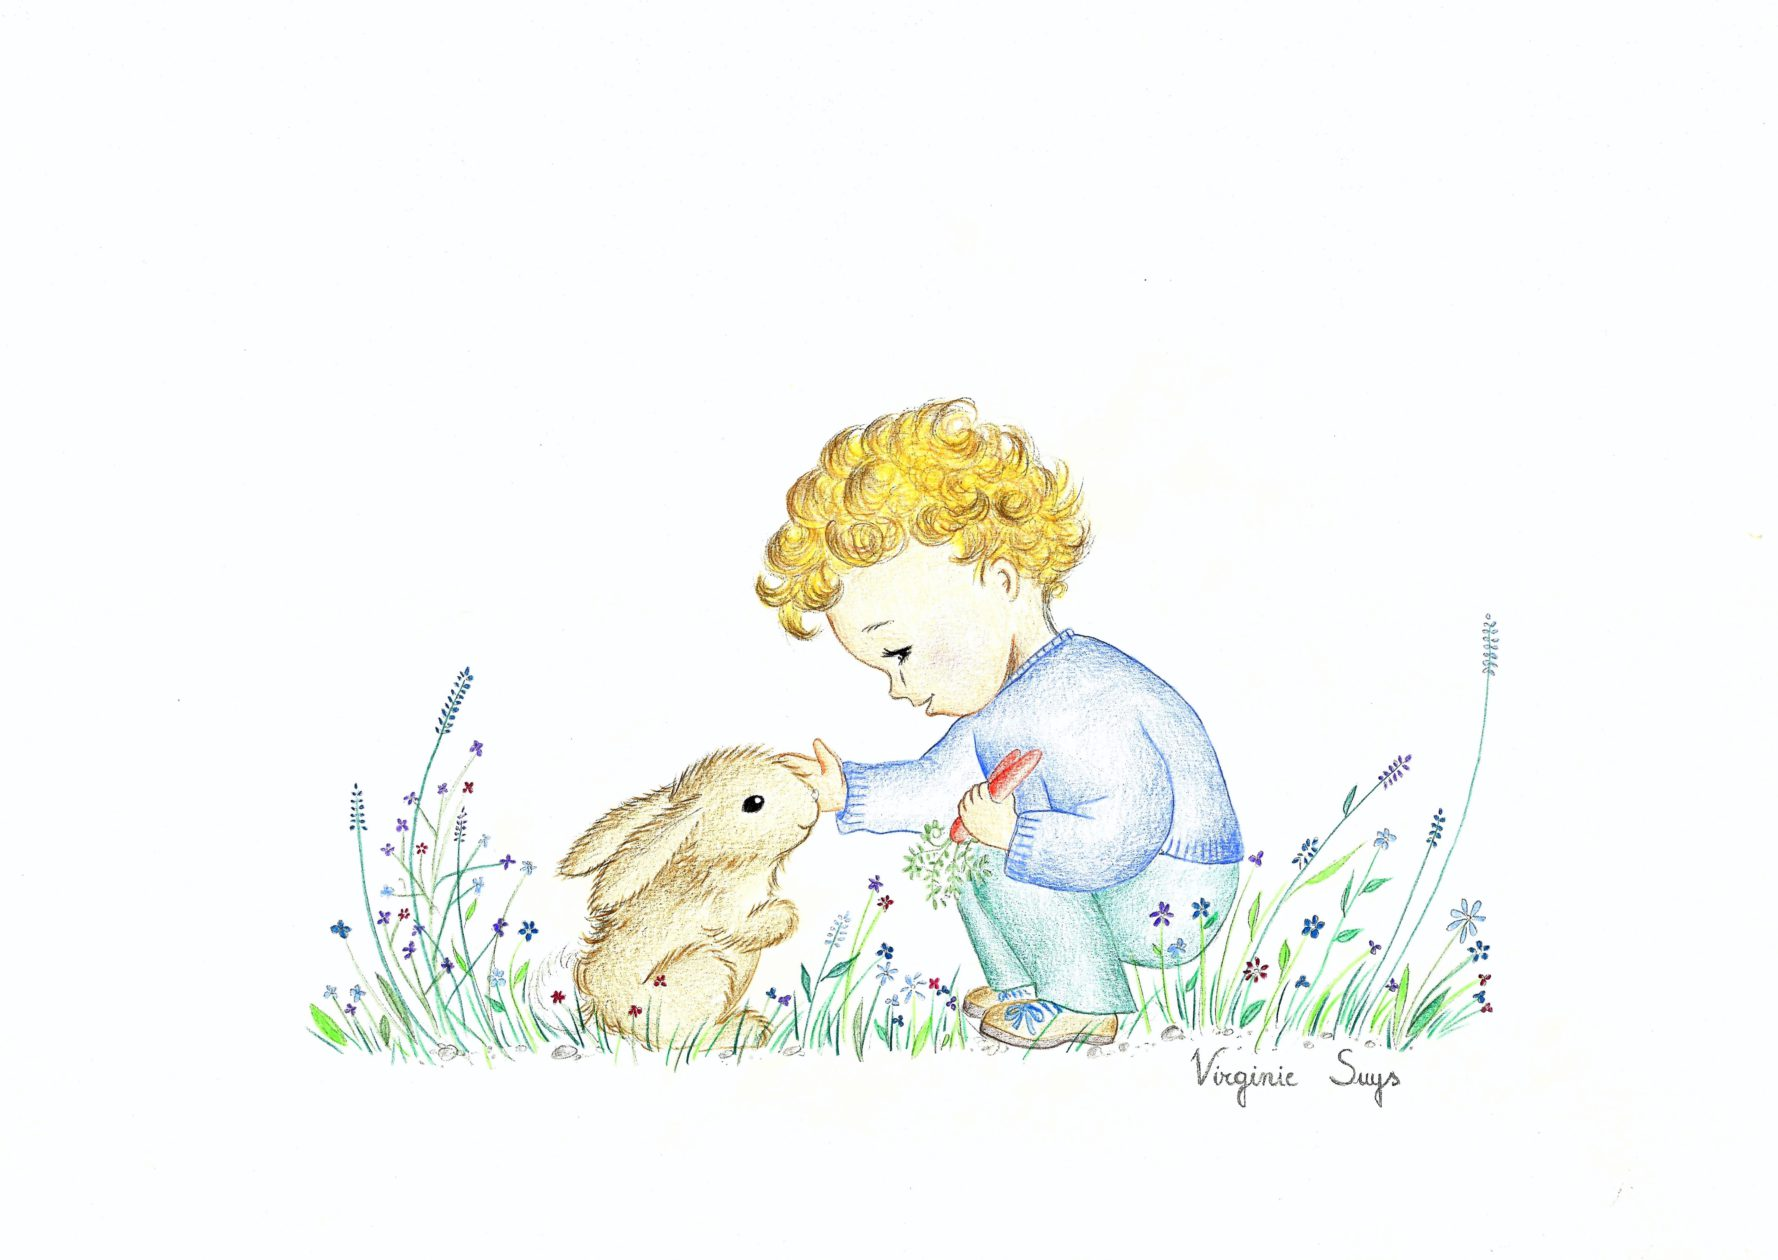 Virginie Suys Boy with rabbit in blue & green illustration